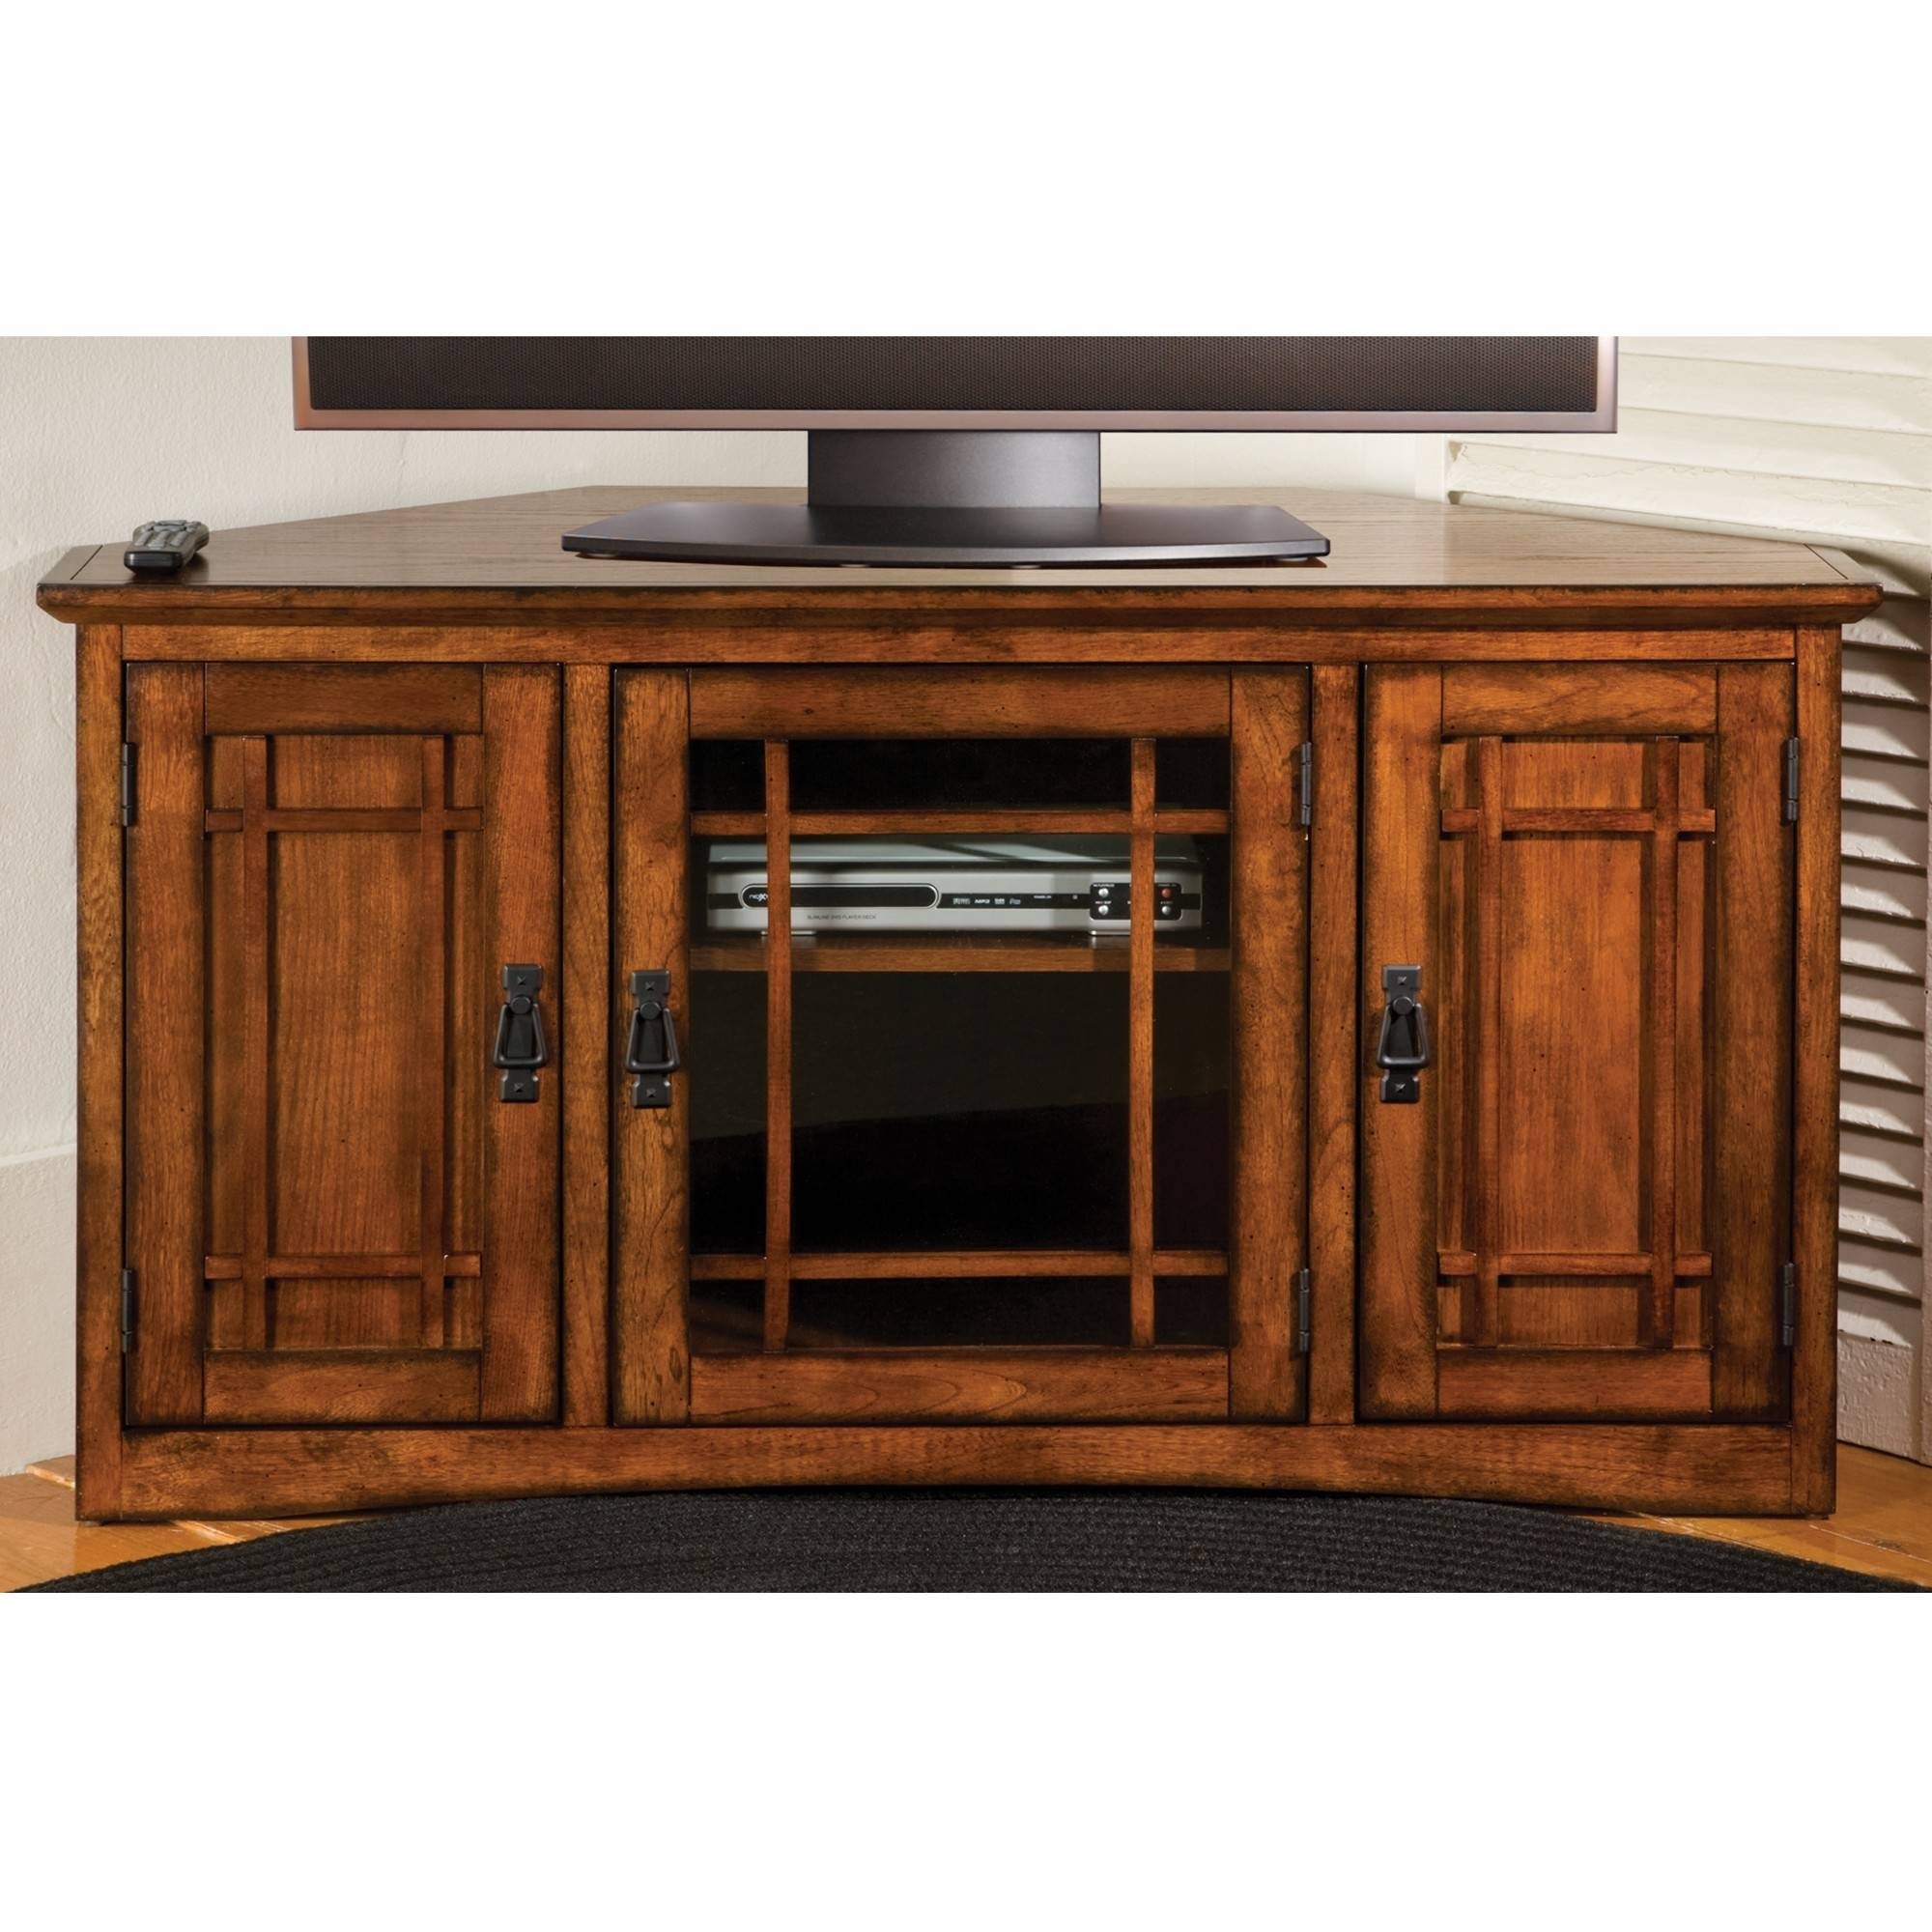 Mission Corner Tv Cabinet | Sturbridge Yankee Workshop regarding Corner Tv Cabinets With Glass Doors (Image 10 of 15)